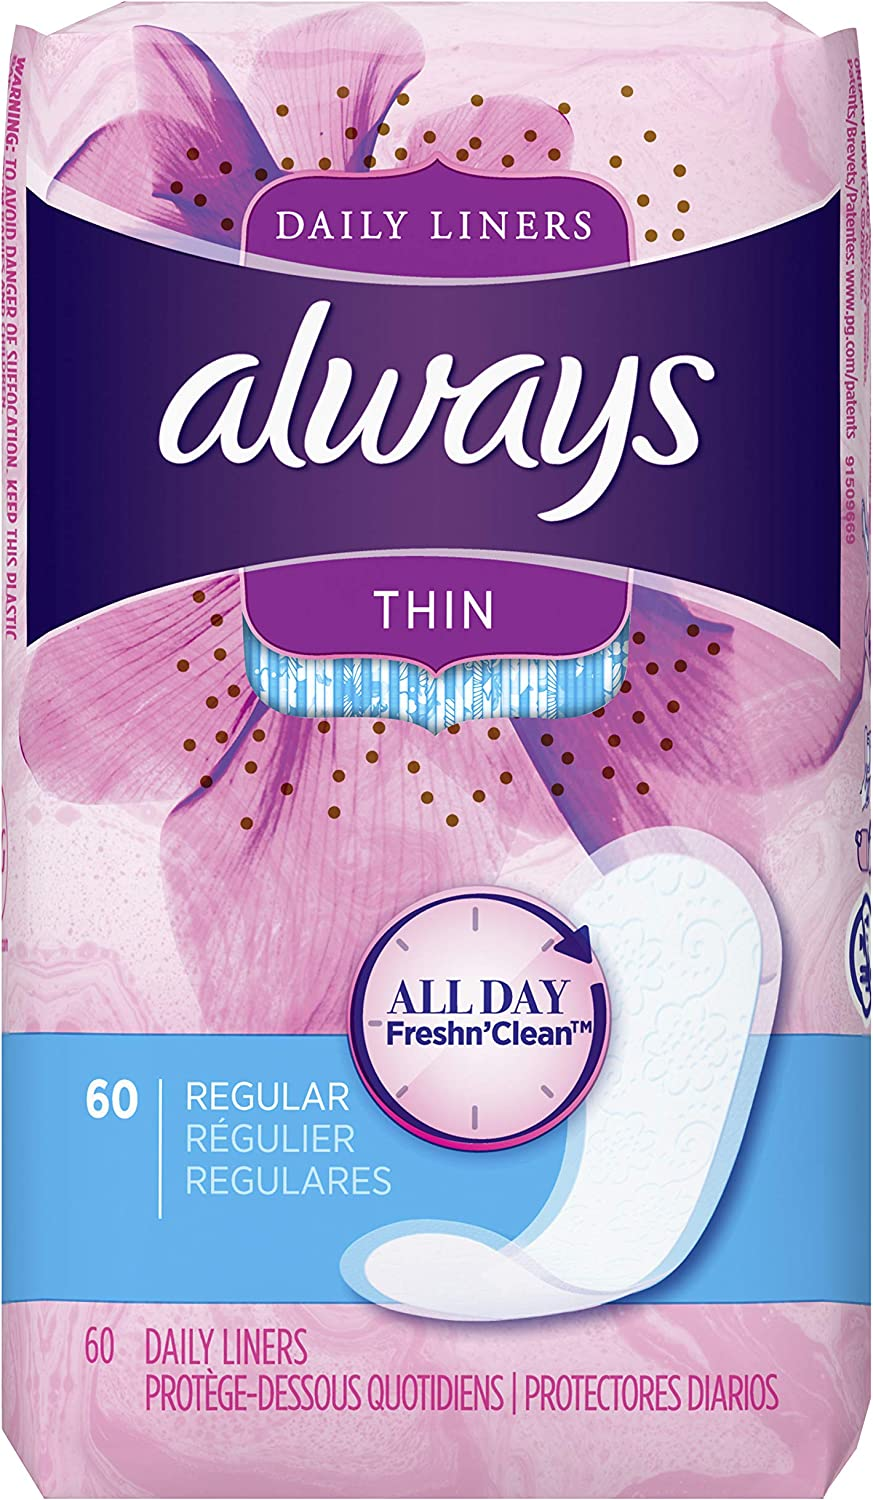 Cash special price Always Thin Dailies Max 46% OFF Liners Wrapped Count 60 Unscented